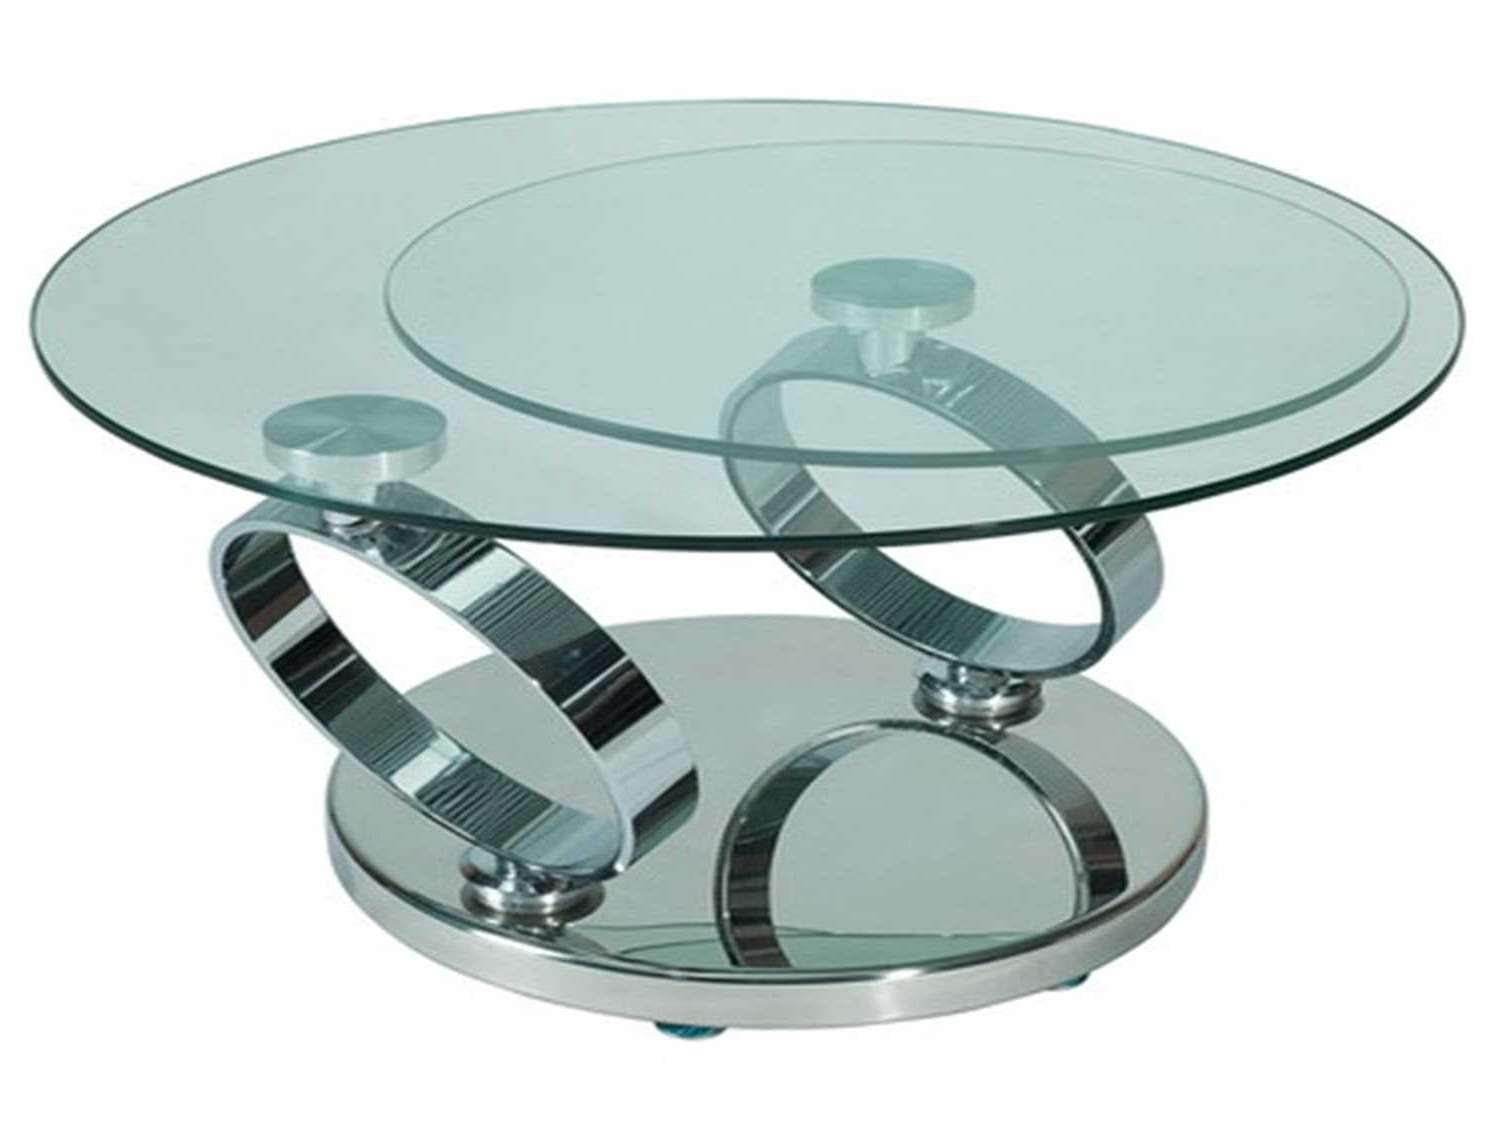 Blsolarct With Regard To Trendy Round Swivel Coffee Tables (View 2 of 20)